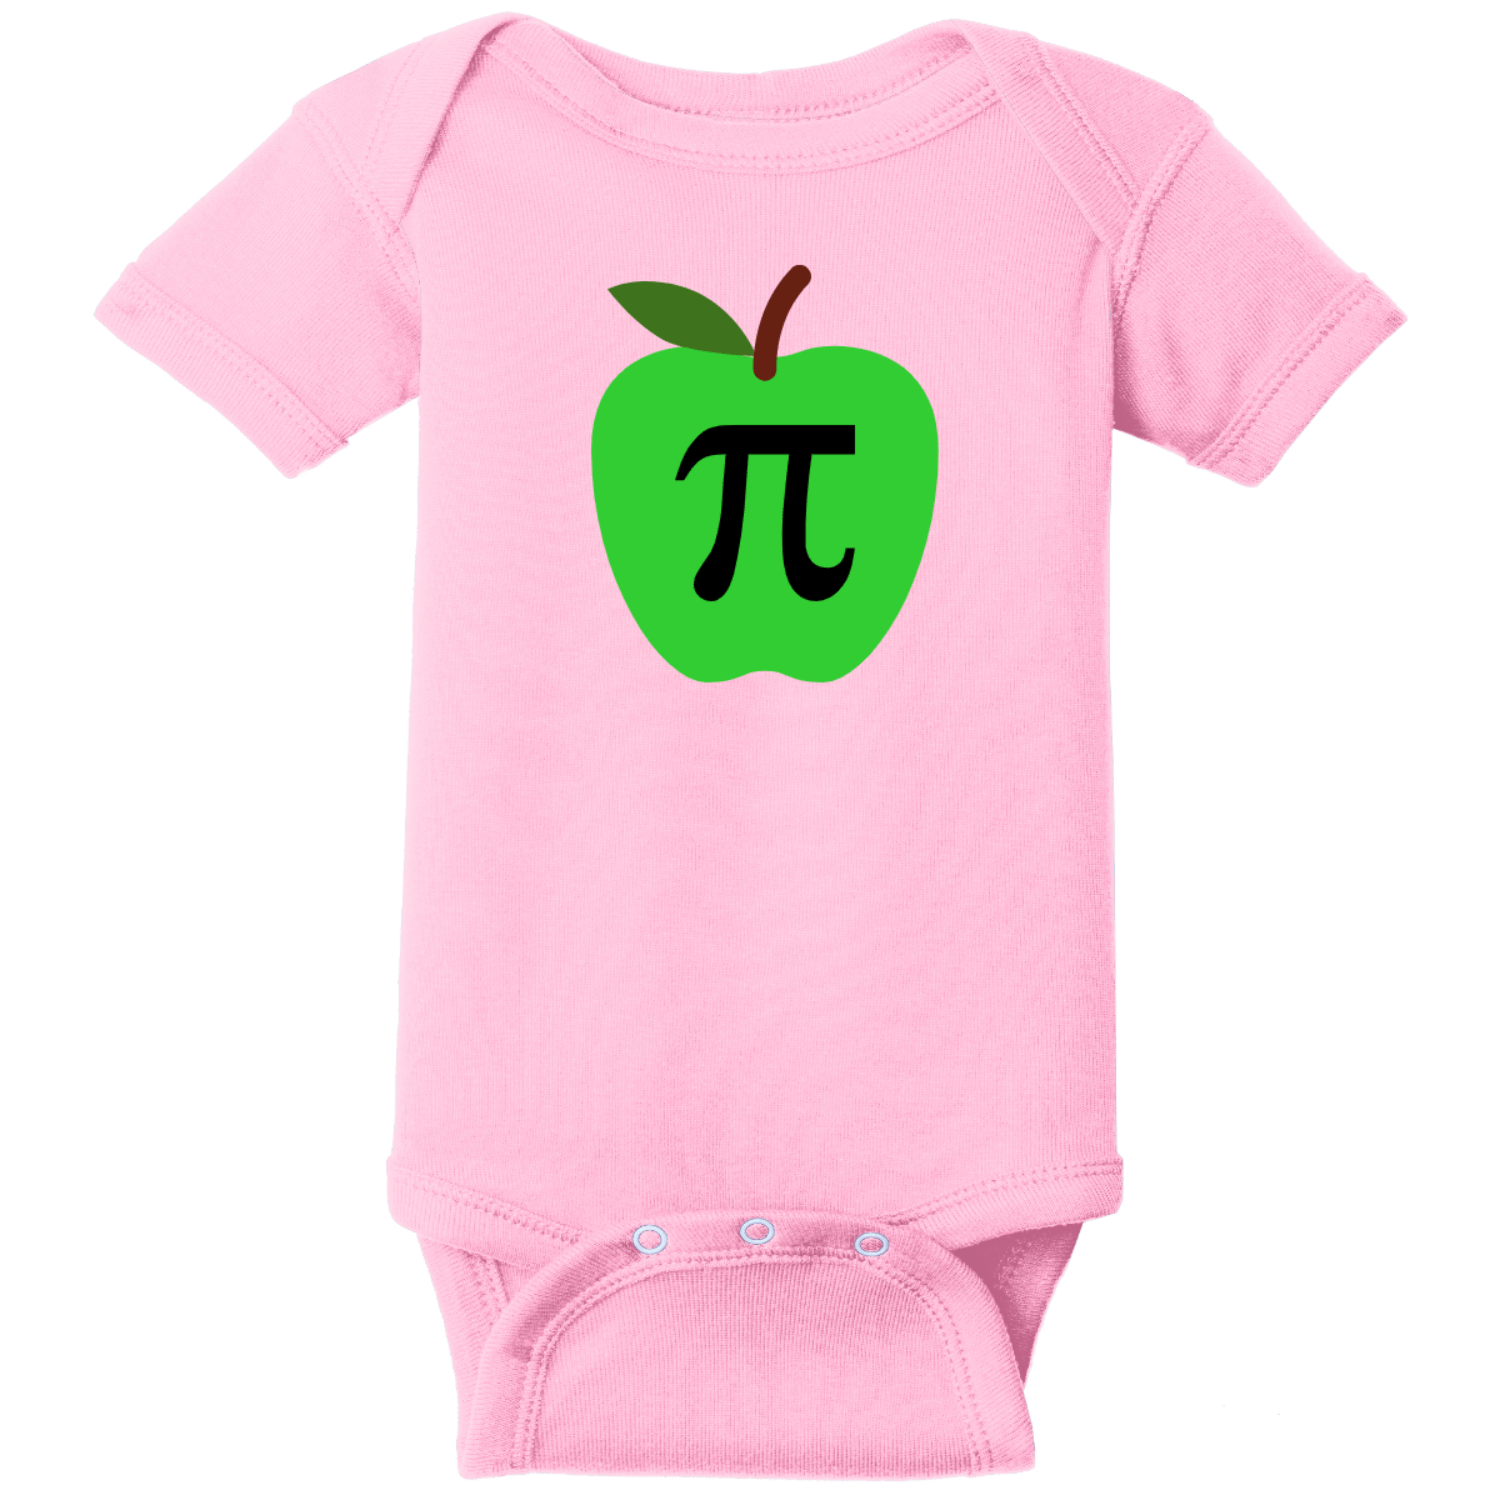 Apple Pi Baby Bodysuit Pink Rabbit Skins Infant Short Sleeve Infant Rib Bodysuit RS4400